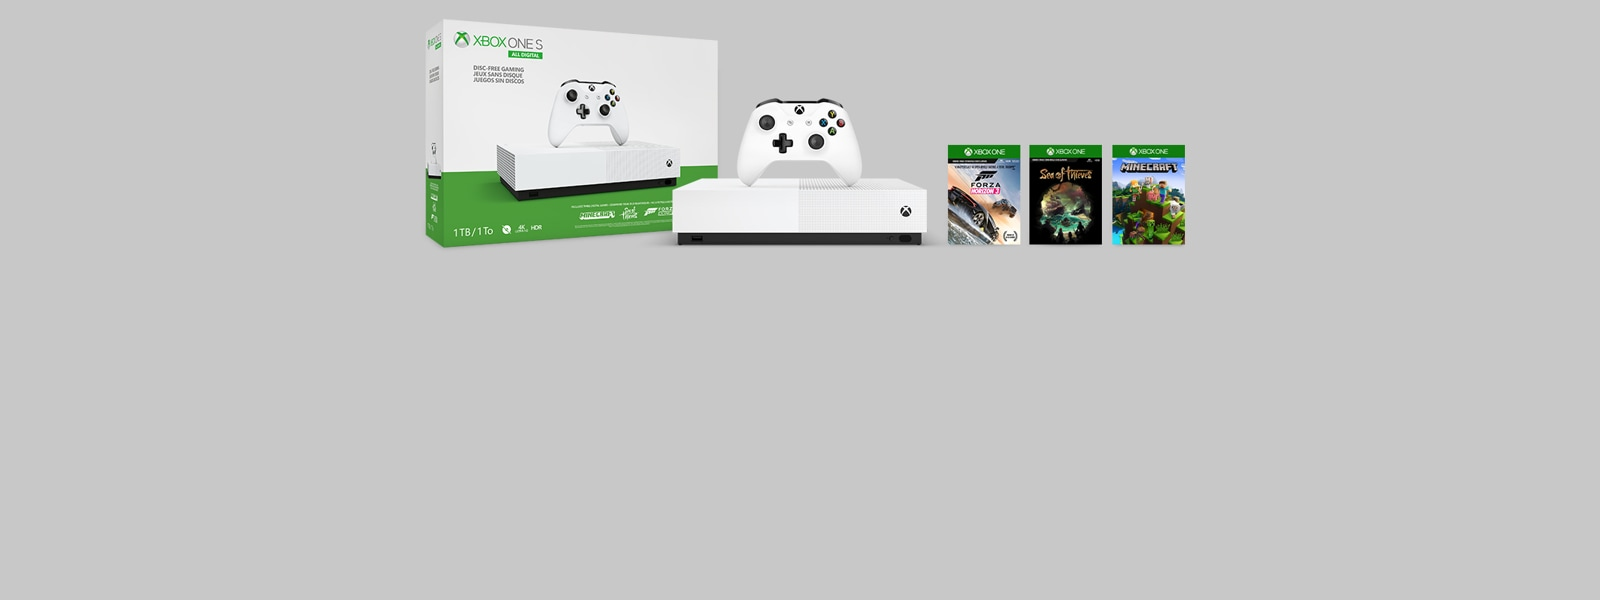 Nieuwe Xbox One S All-Digital Edition-console met vooraf geïnstalleerde games: Forza Horizon 3, Sea of Thieves, Minecraft